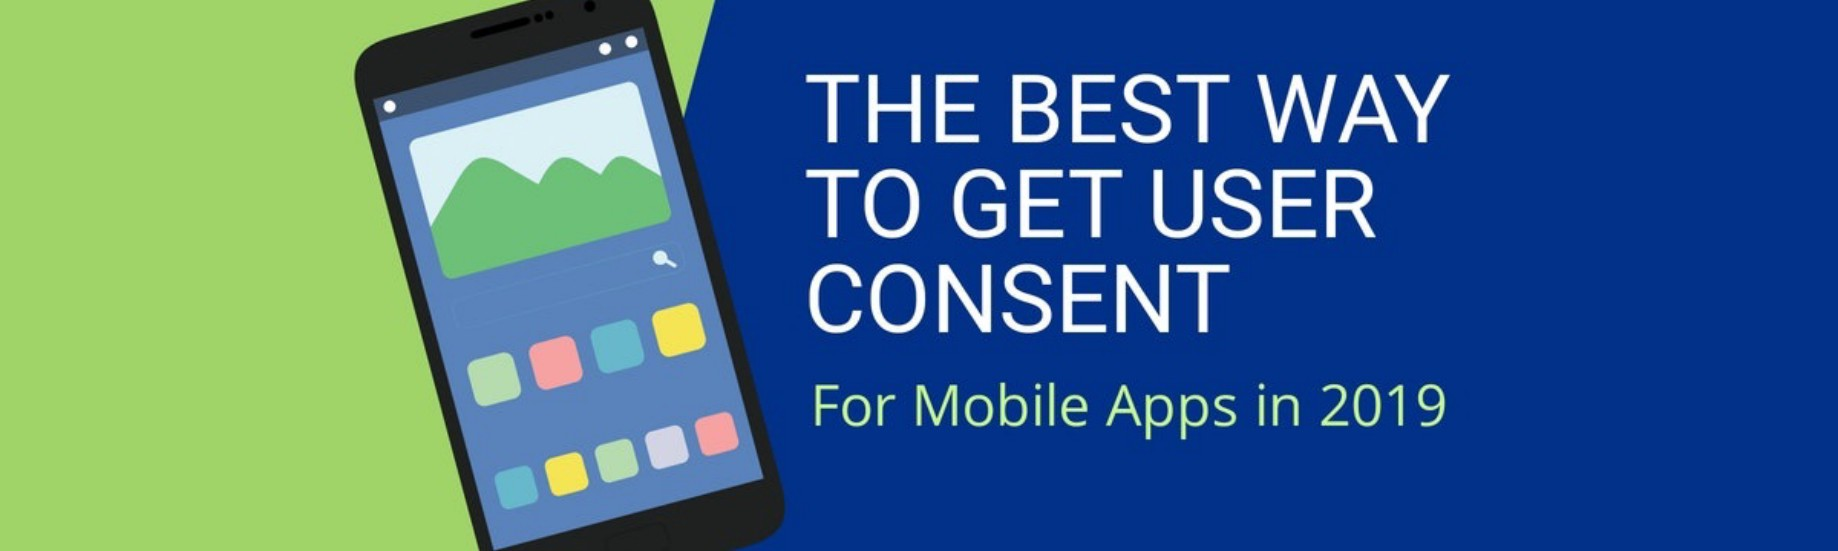 The best way to get user consent for Mobile Apps in 2019